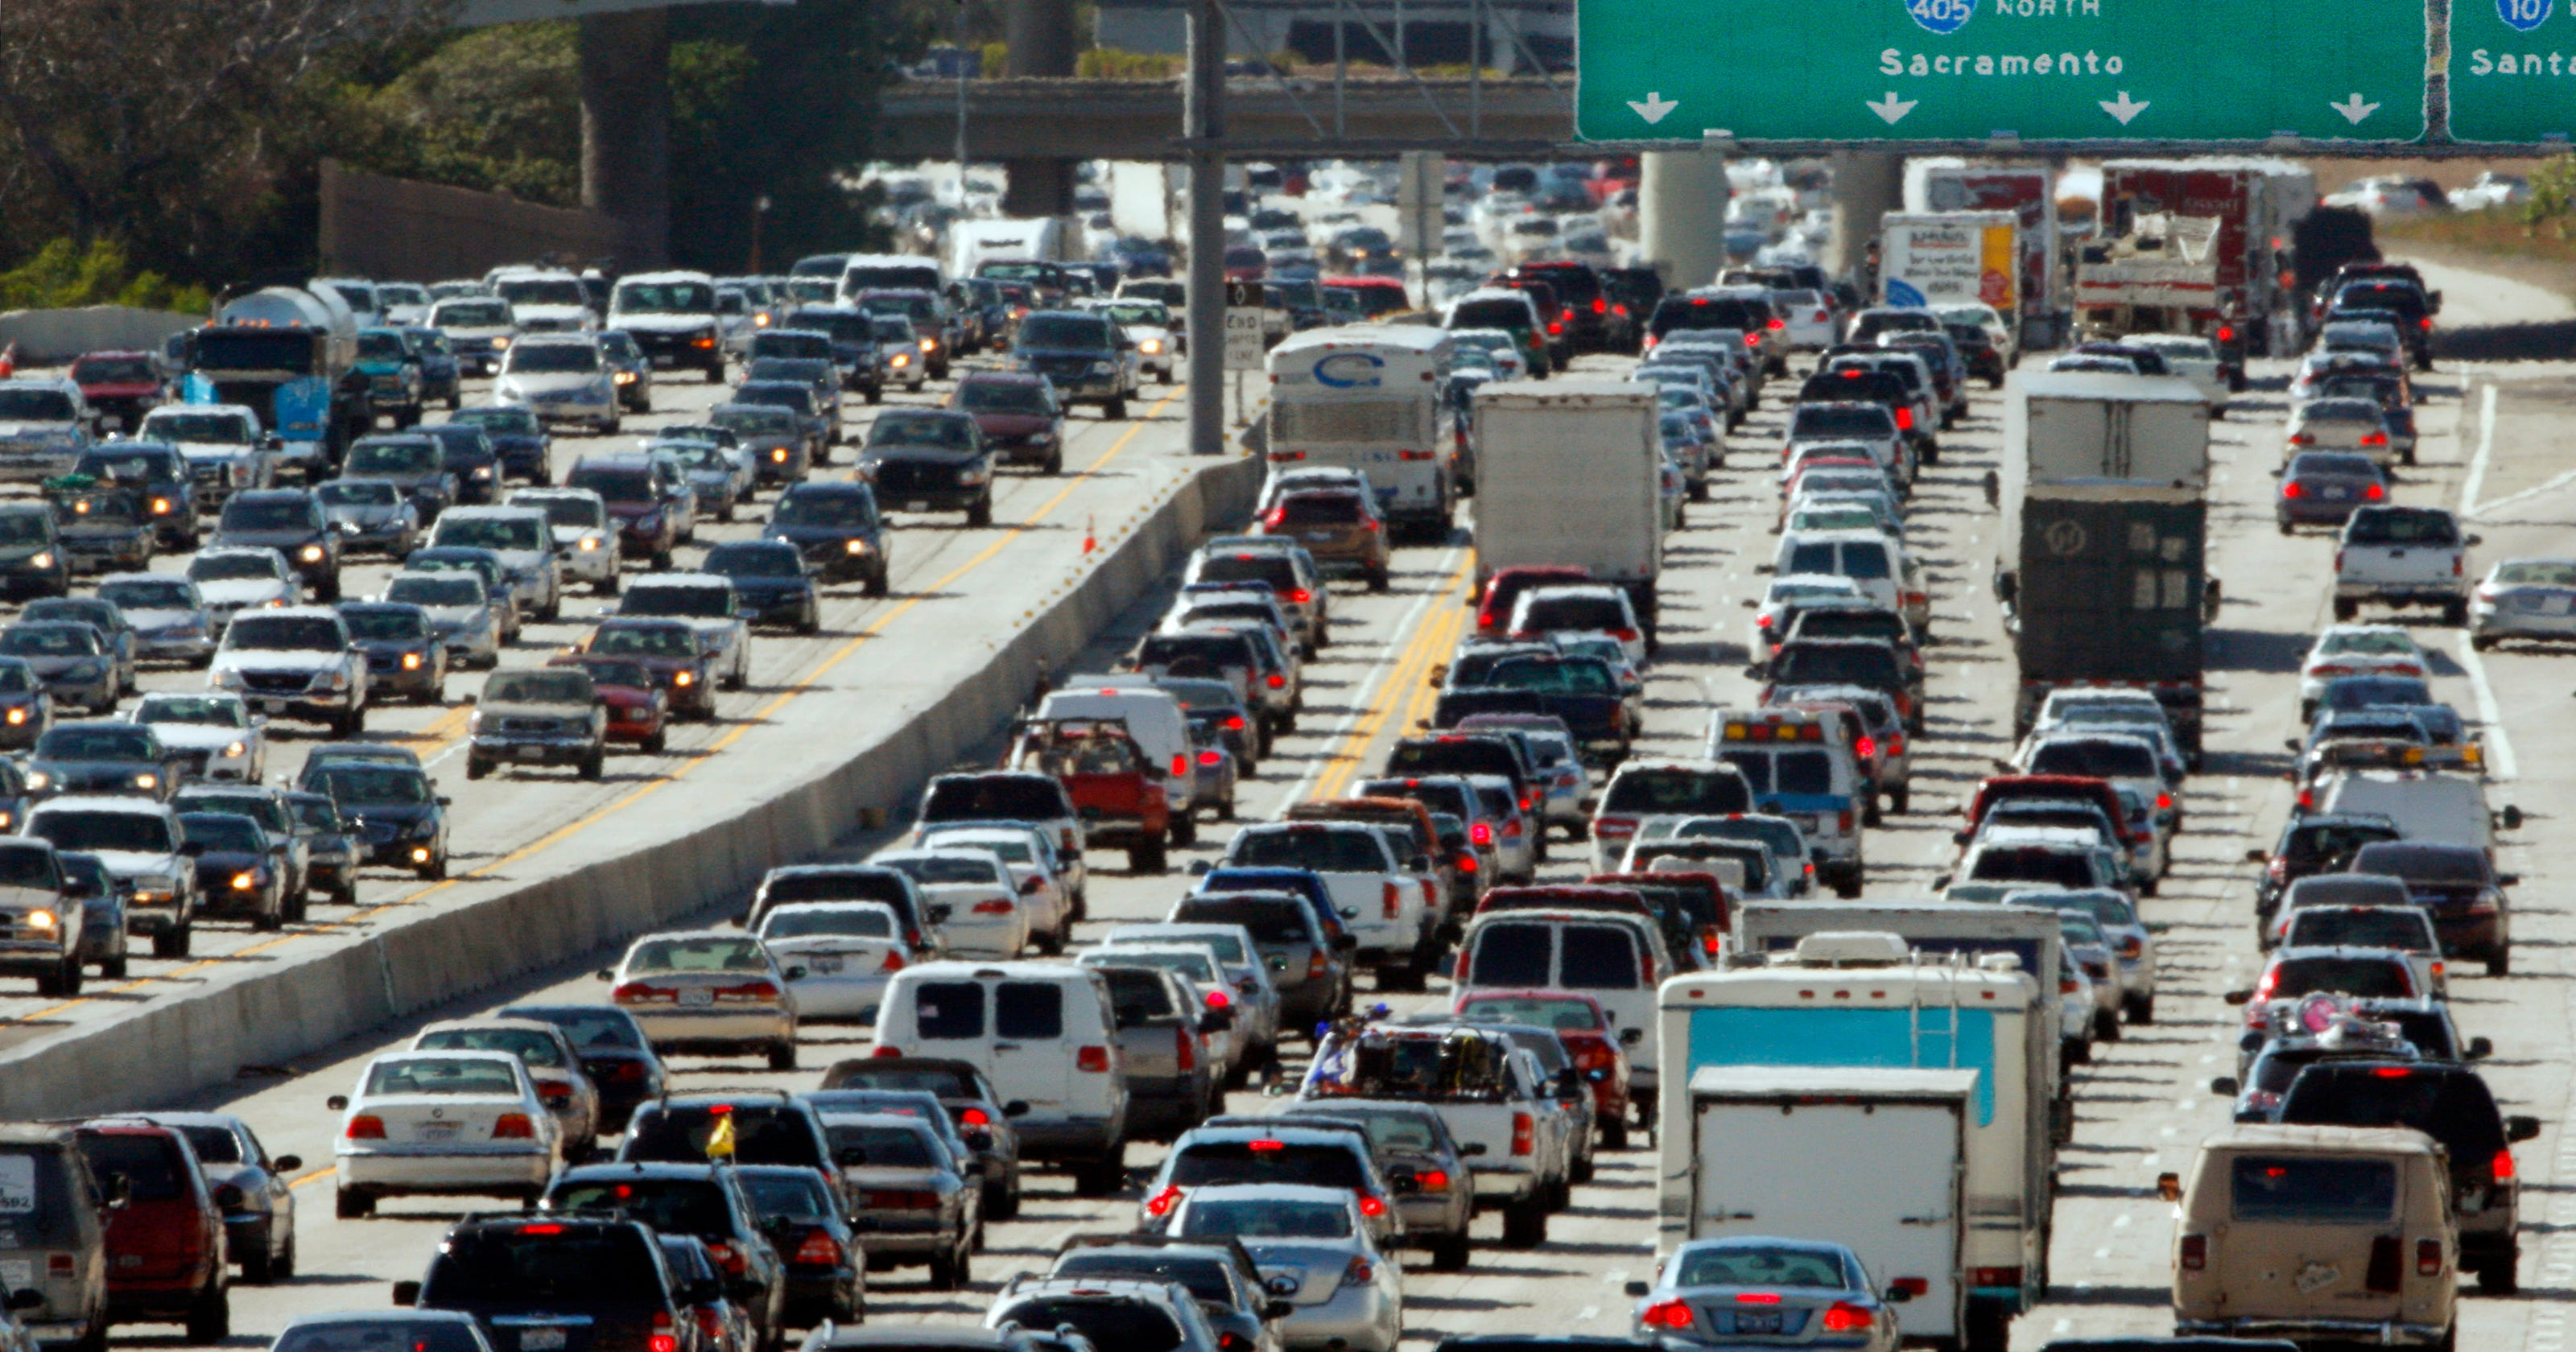 jammed: l.a., san francisco tops in traffic misery